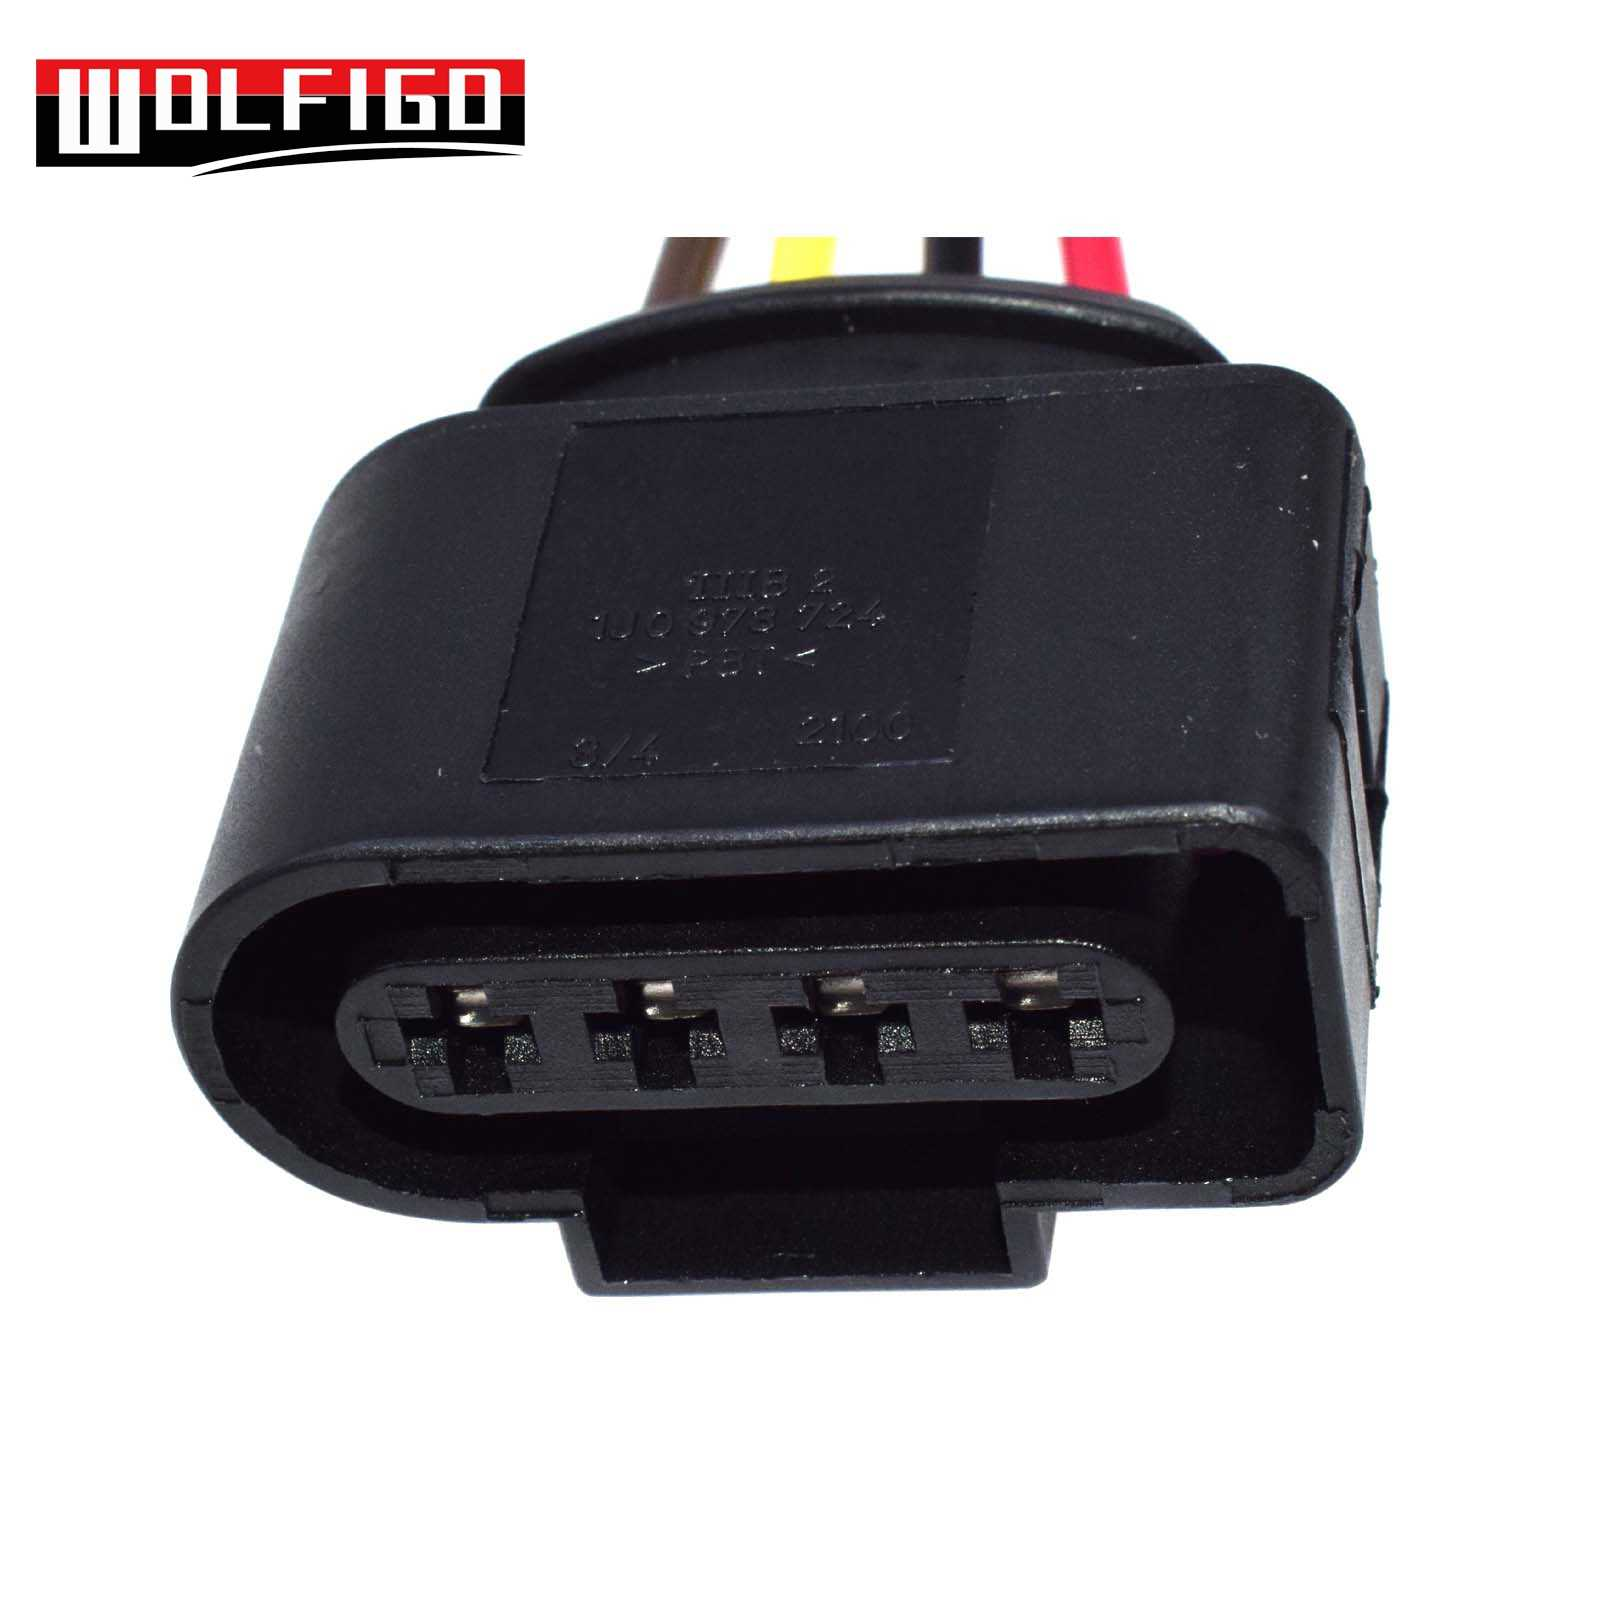 wolfigo new ignition coil connector repair kit harness plug wiring for audi vw skoda [ 1600 x 1600 Pixel ]